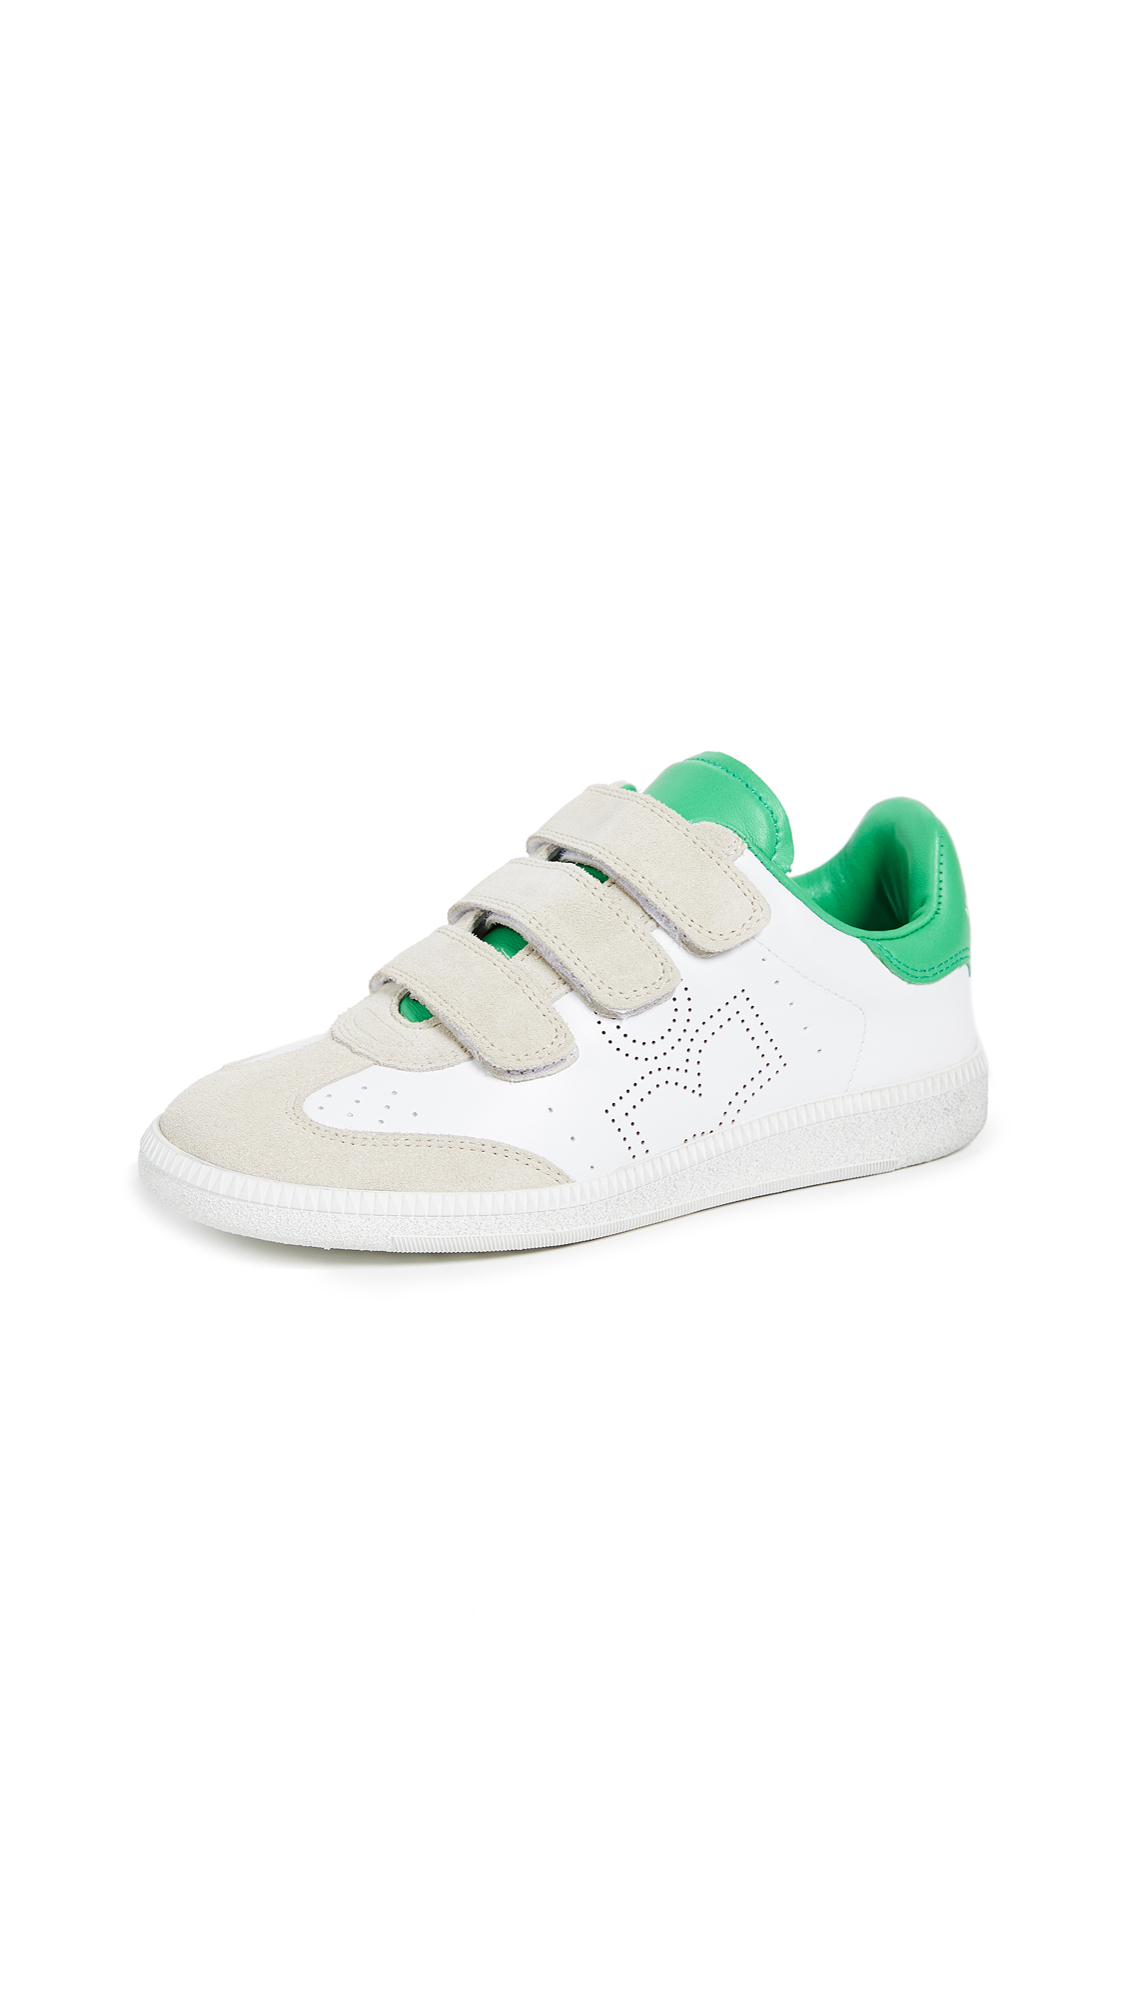 Isabel Marant Beth Velcro Sneakers - Green